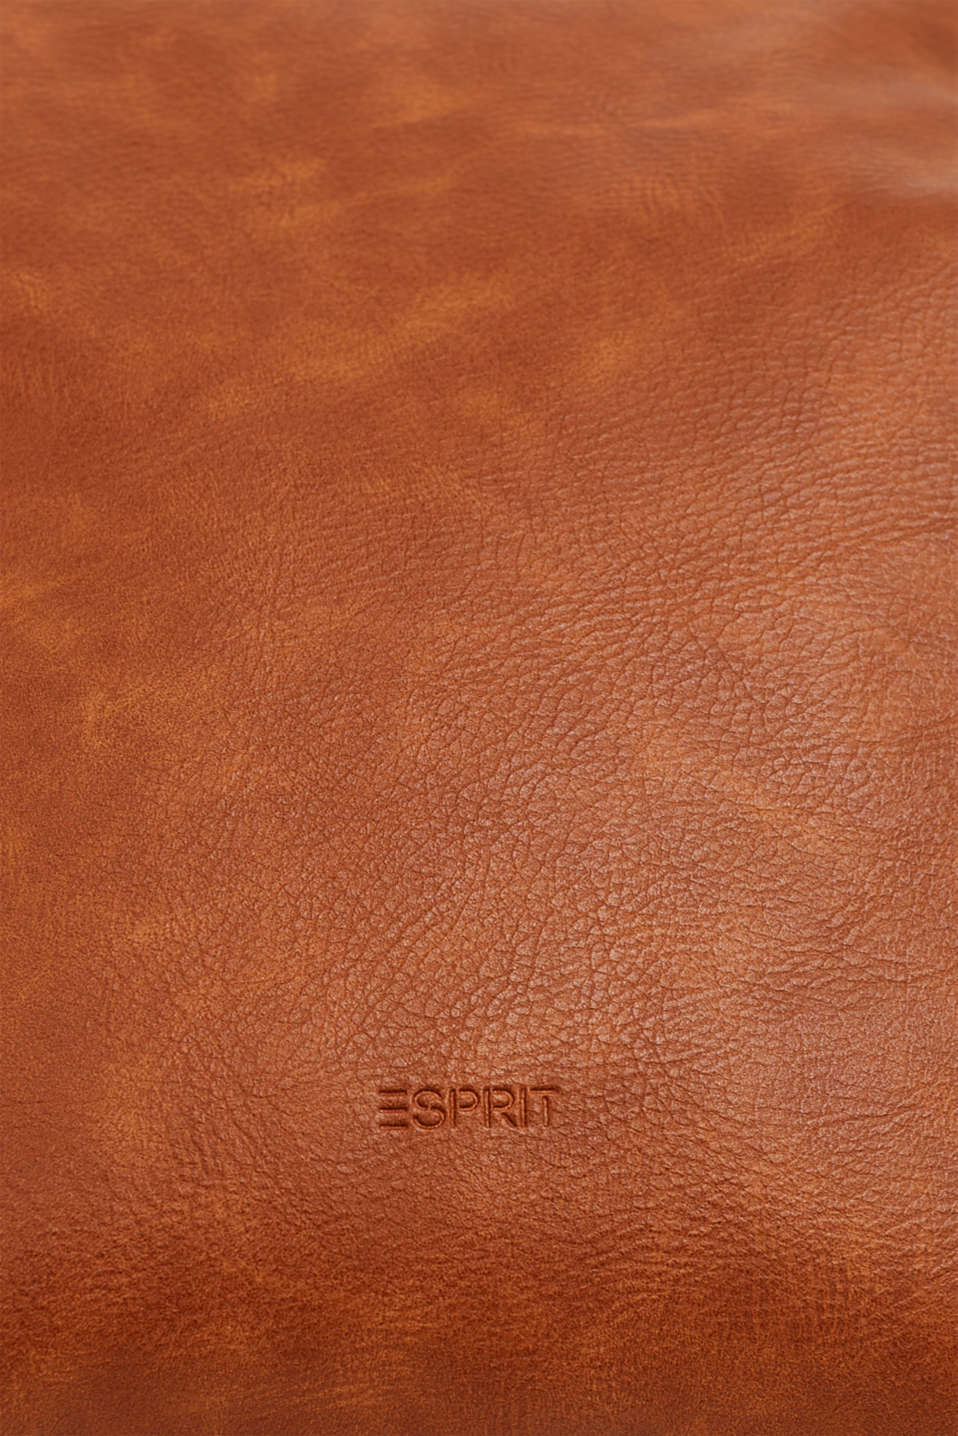 Faux leather shoulder bag, RUST BROWN, detail image number 3